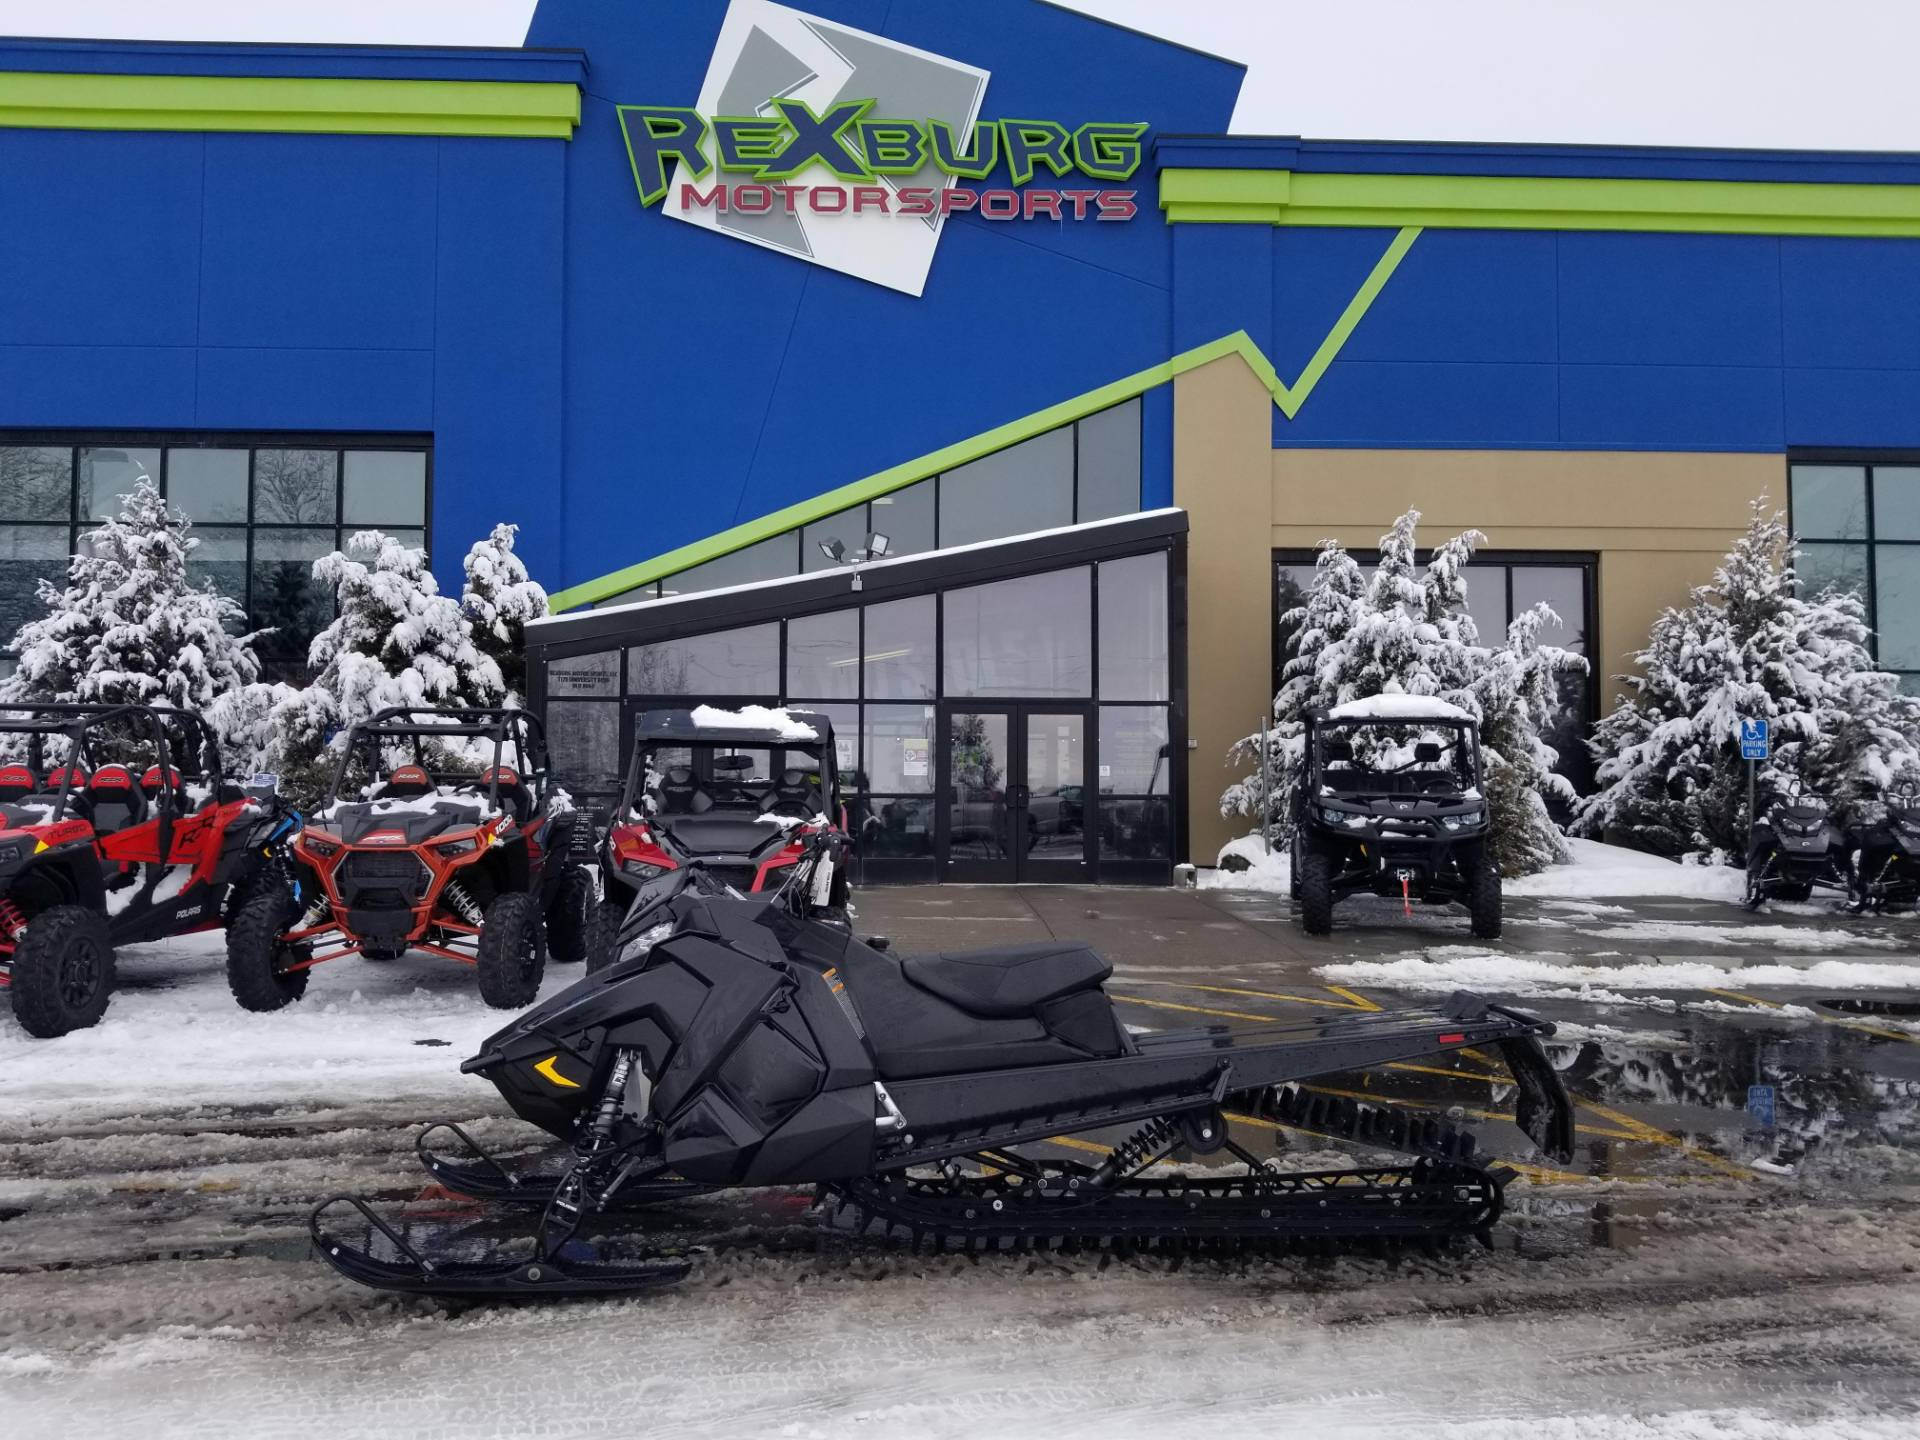 2019 Polaris 800 PRO-RMK 174 SnowCheck Select 3.0 in Rexburg, Idaho - Photo 1